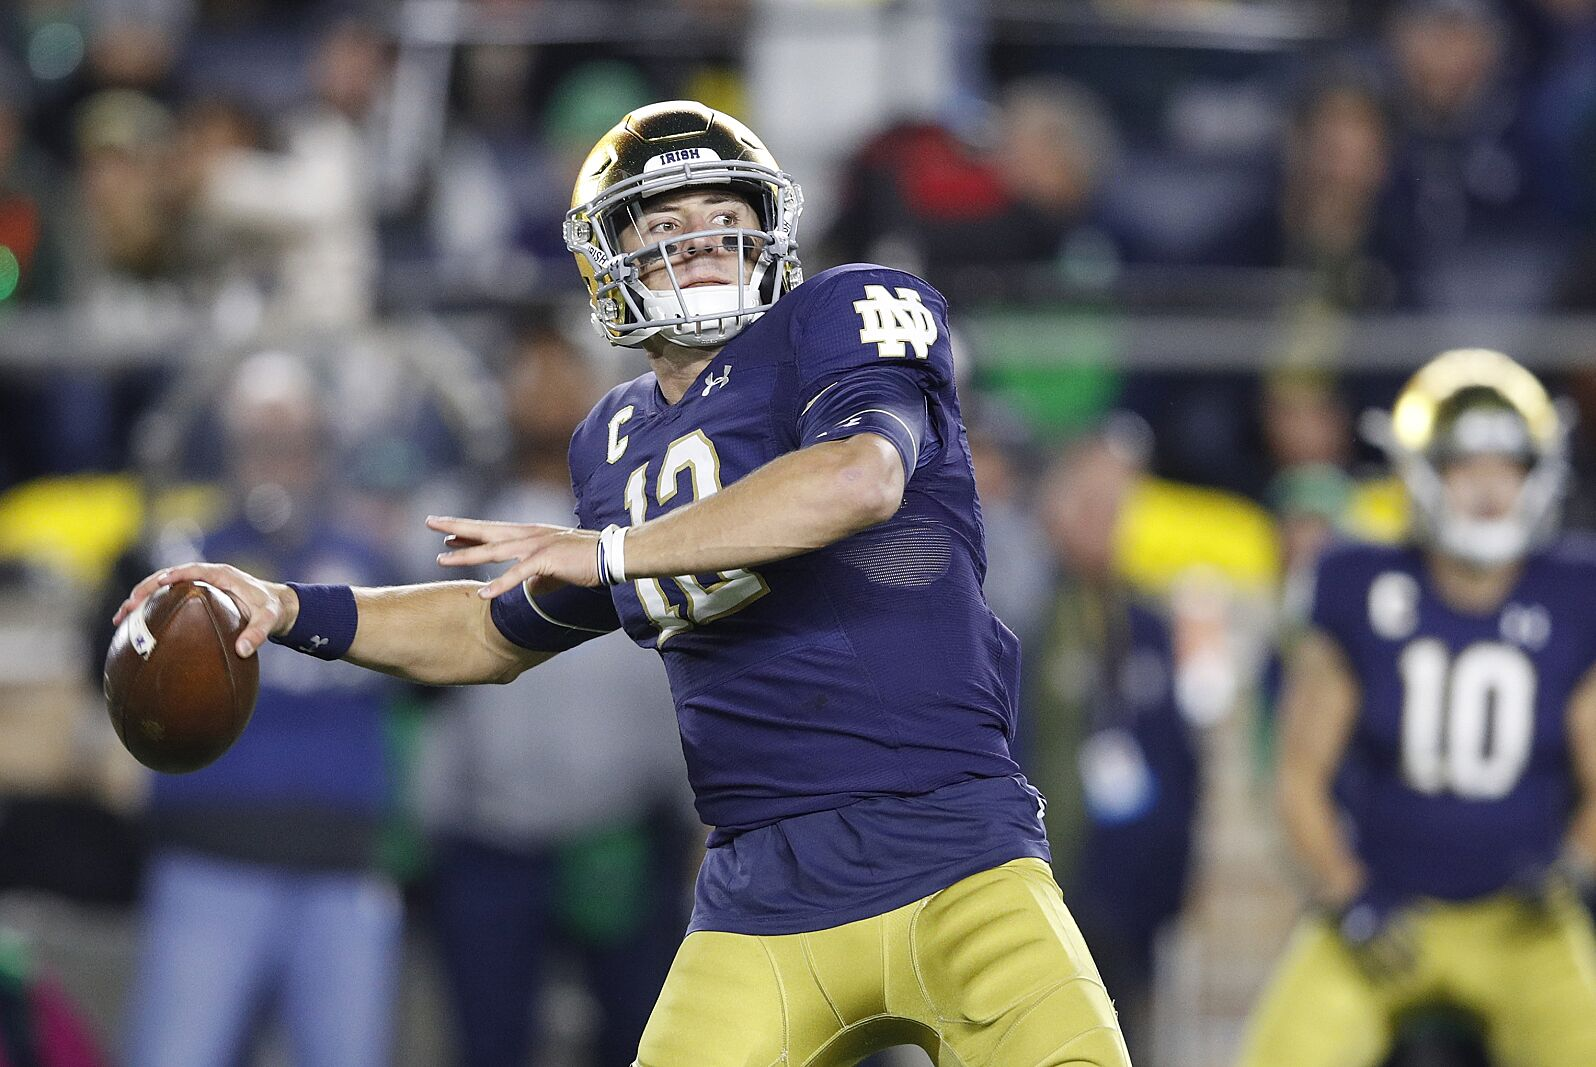 Notre Dame: Compliments and Conclusions vs USC